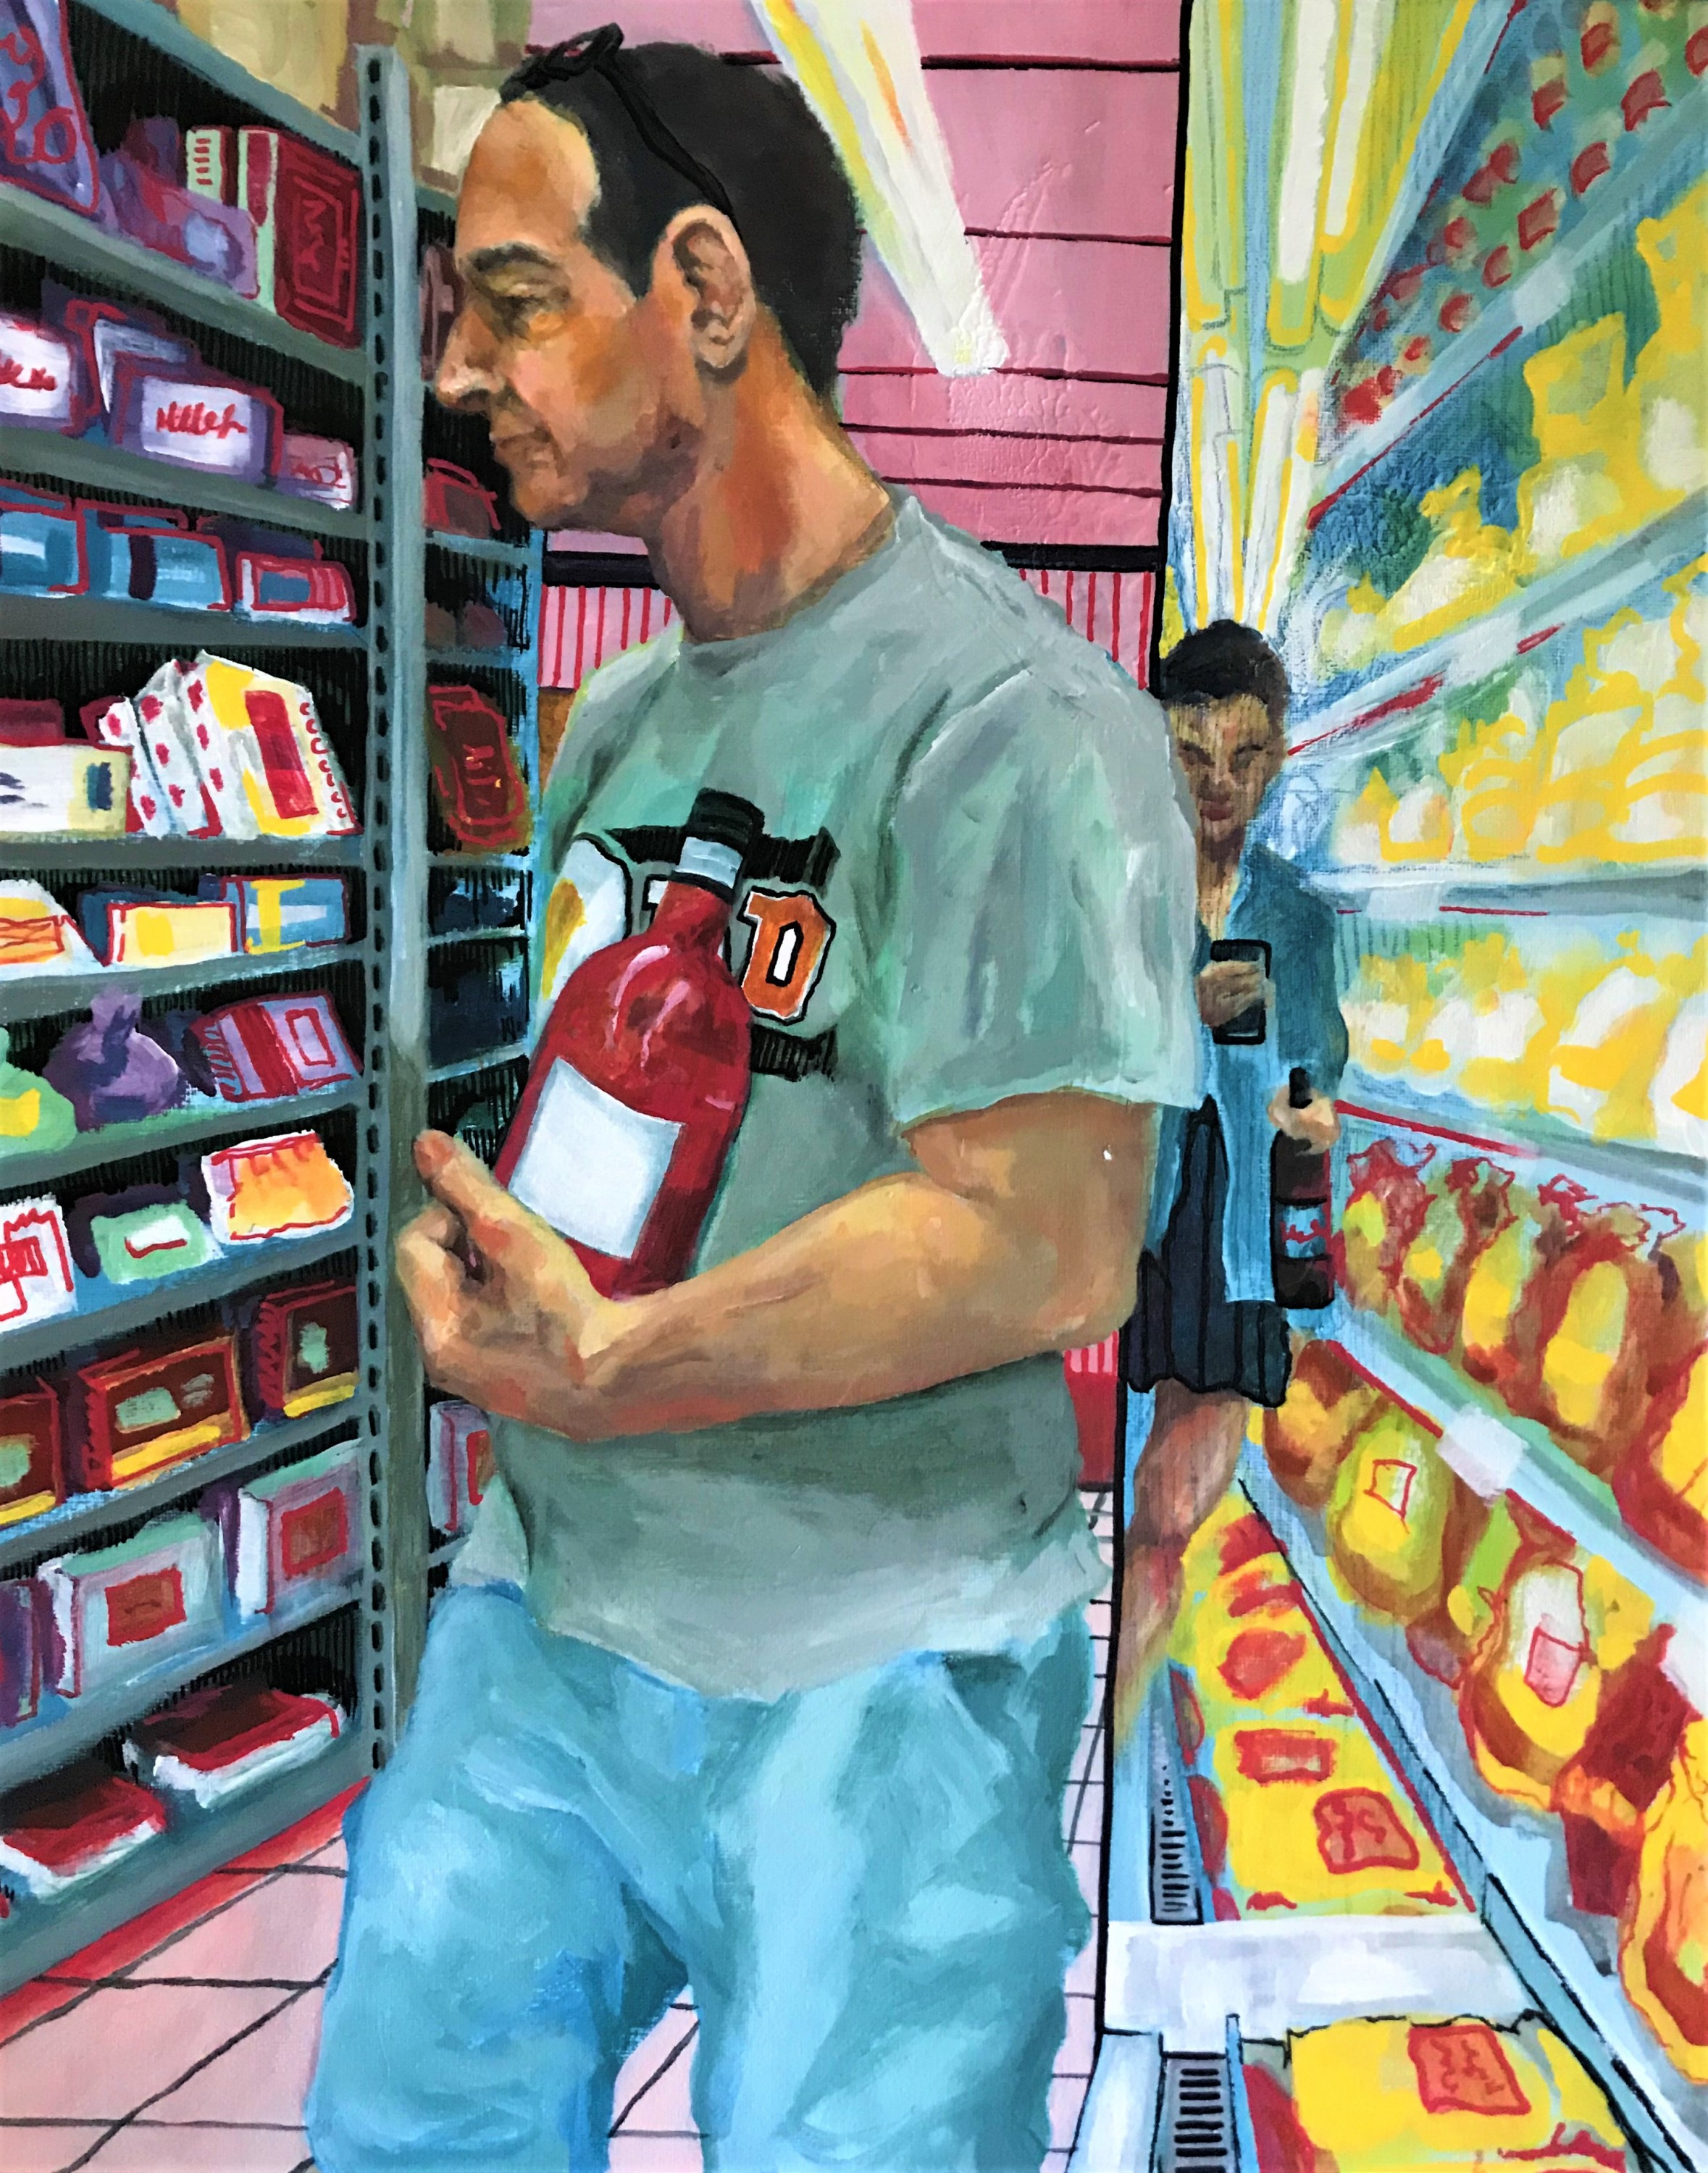 A father figure is in the foreground holding a bottle of unidentified rosé, wearing a grey t-shirt and light blue shorts. To the left of him are grocery store shelves, and to the right is a freezer and a mirror where a younger girl, the daughter, takes an